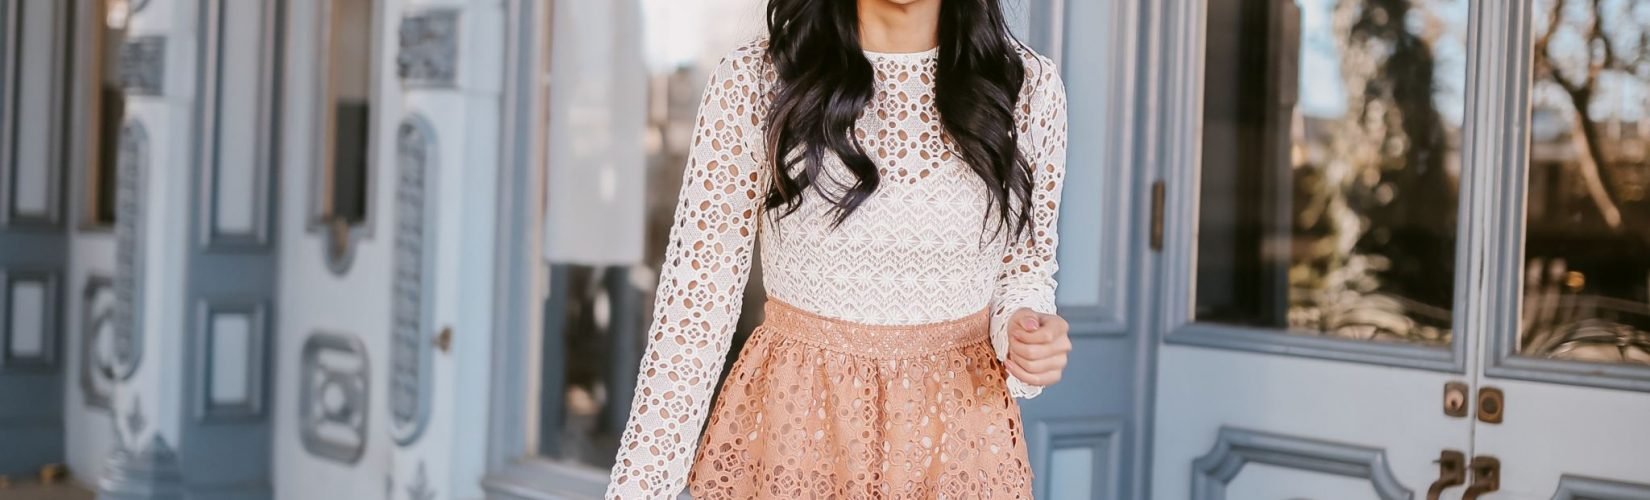 2 Ways to Style a Lace Dress